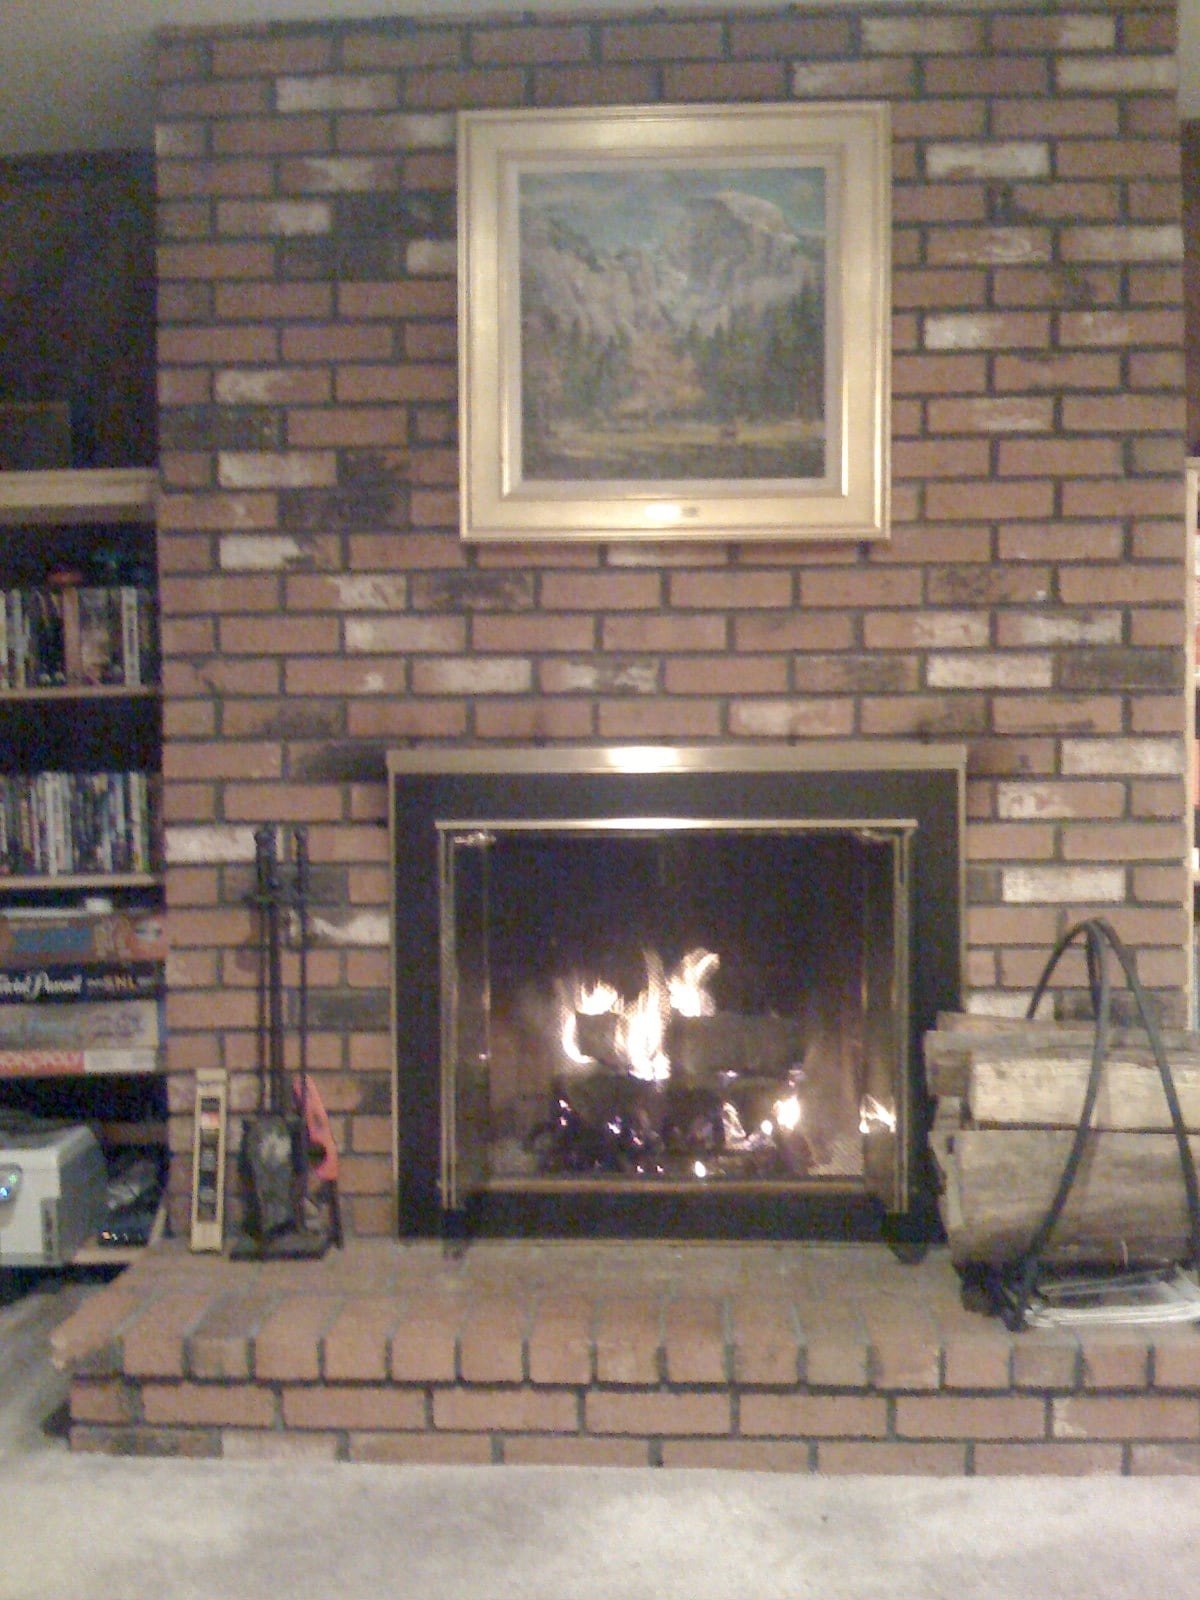 There's a fireplace in the living room.